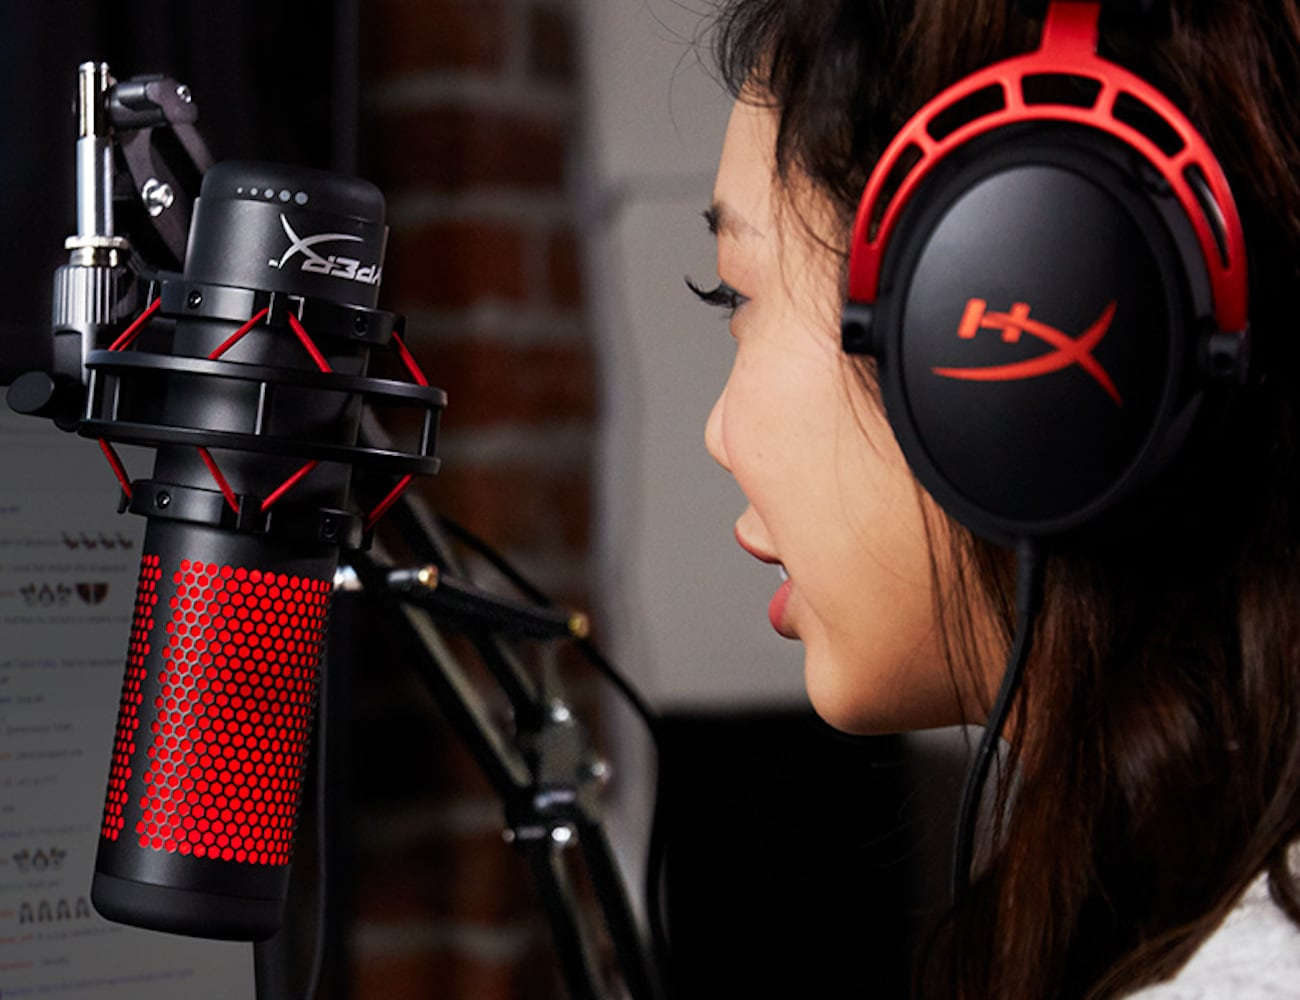 HyperX QuadCast All-Inclusive Standalone Microphone helps you podcast like a pro